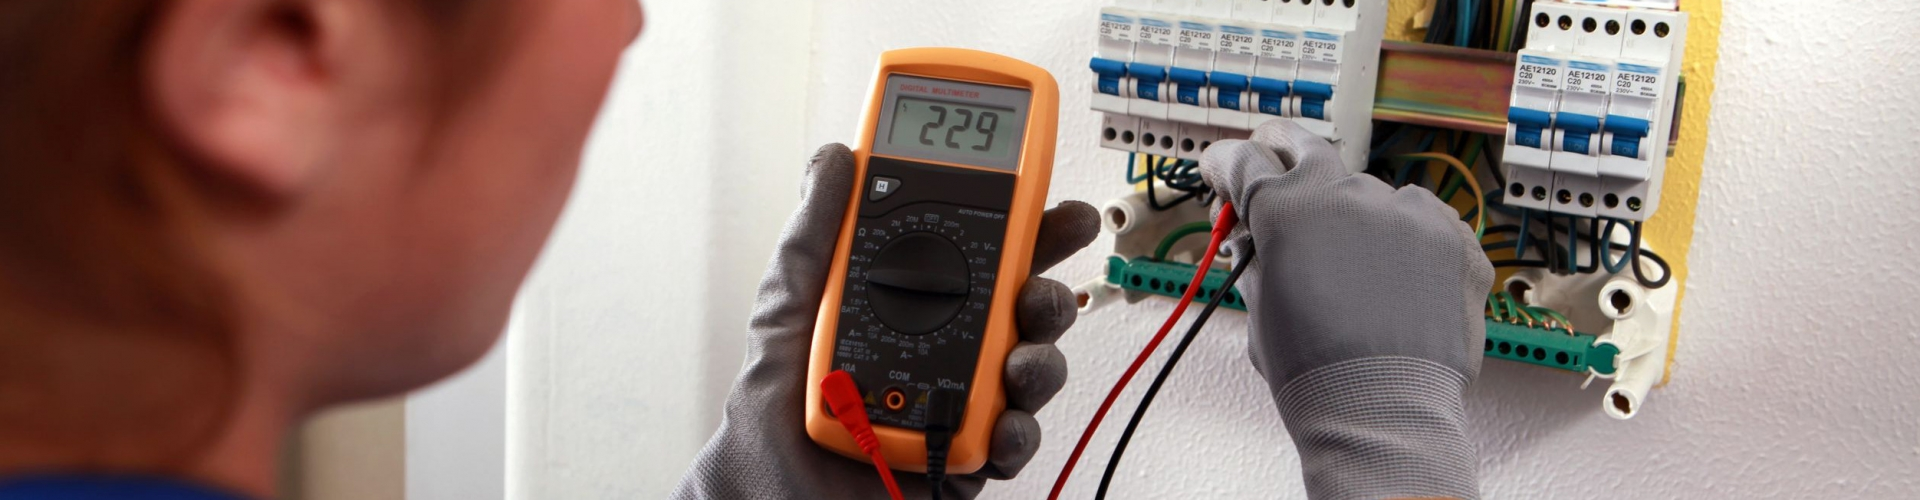 electrician-testing-electrical-wires2